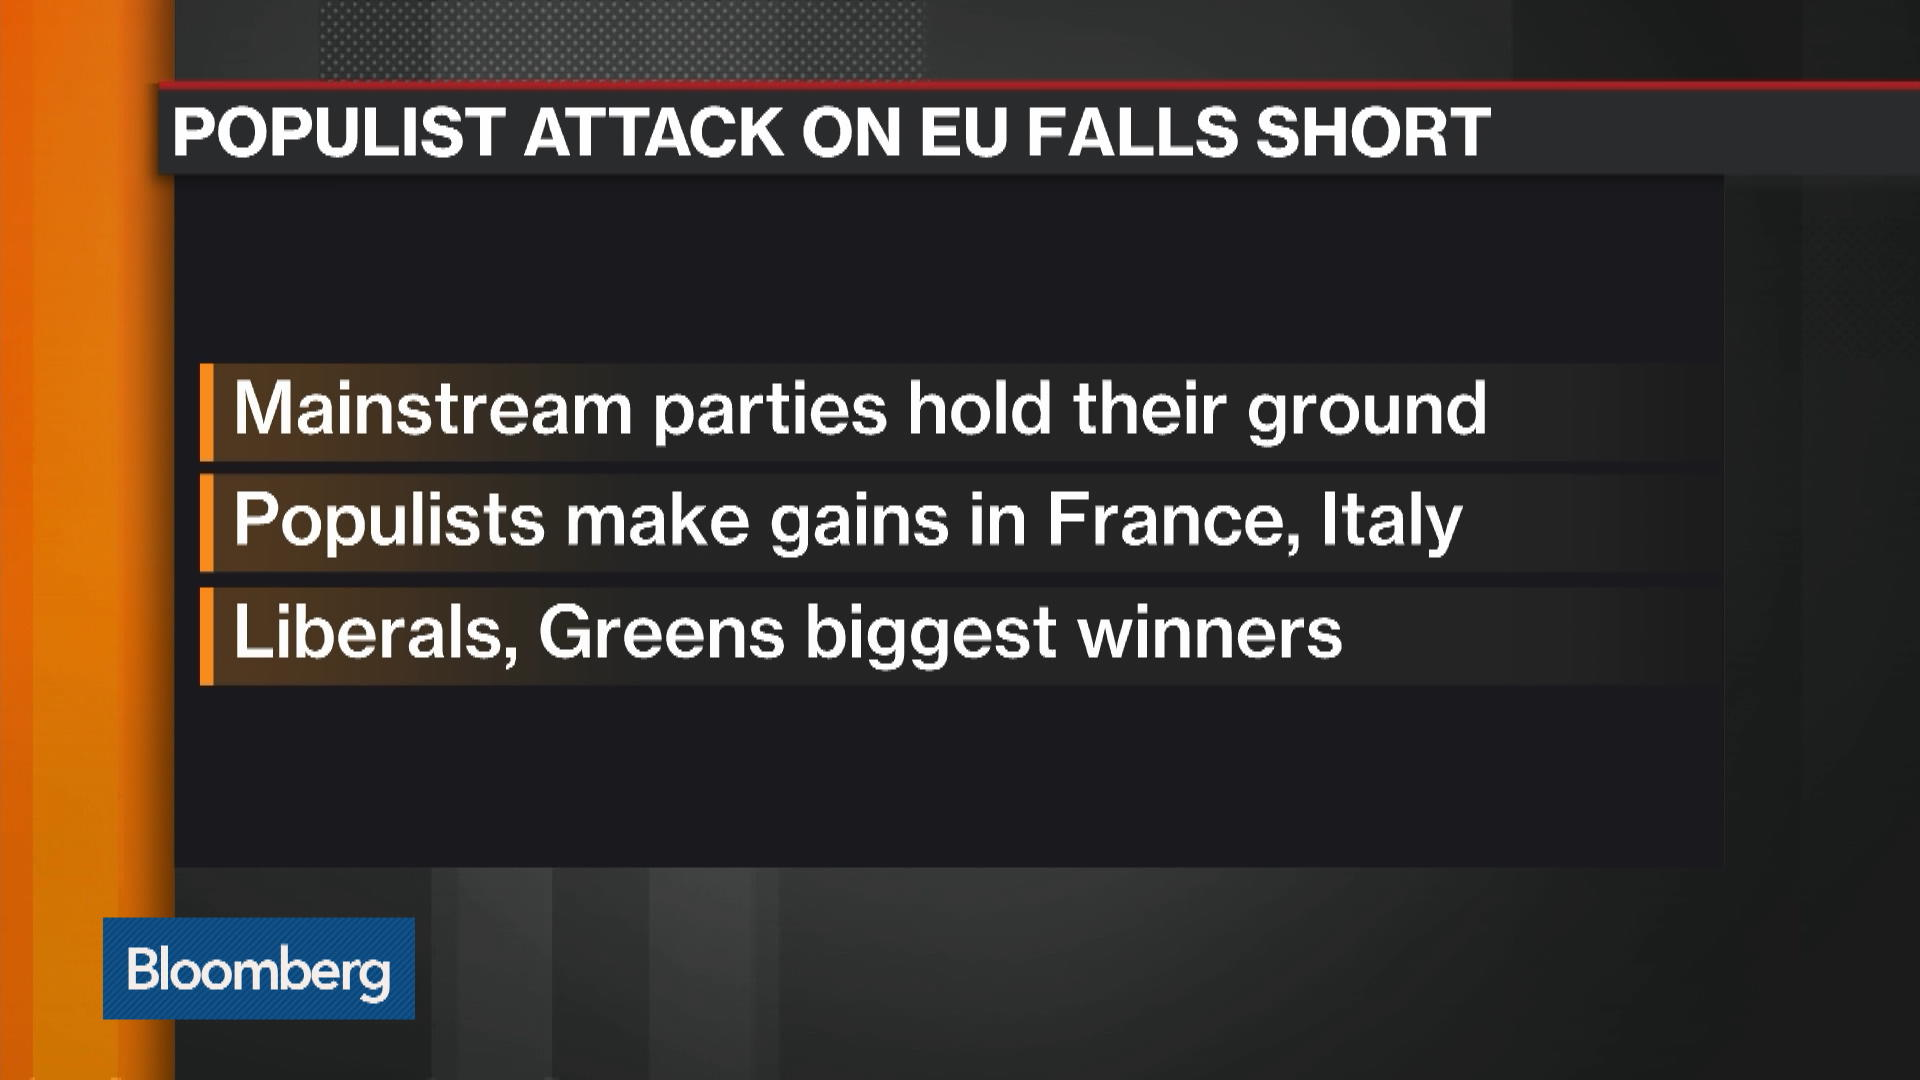 Populist Attack on EU Falls Short Despite Gains in France, Italy